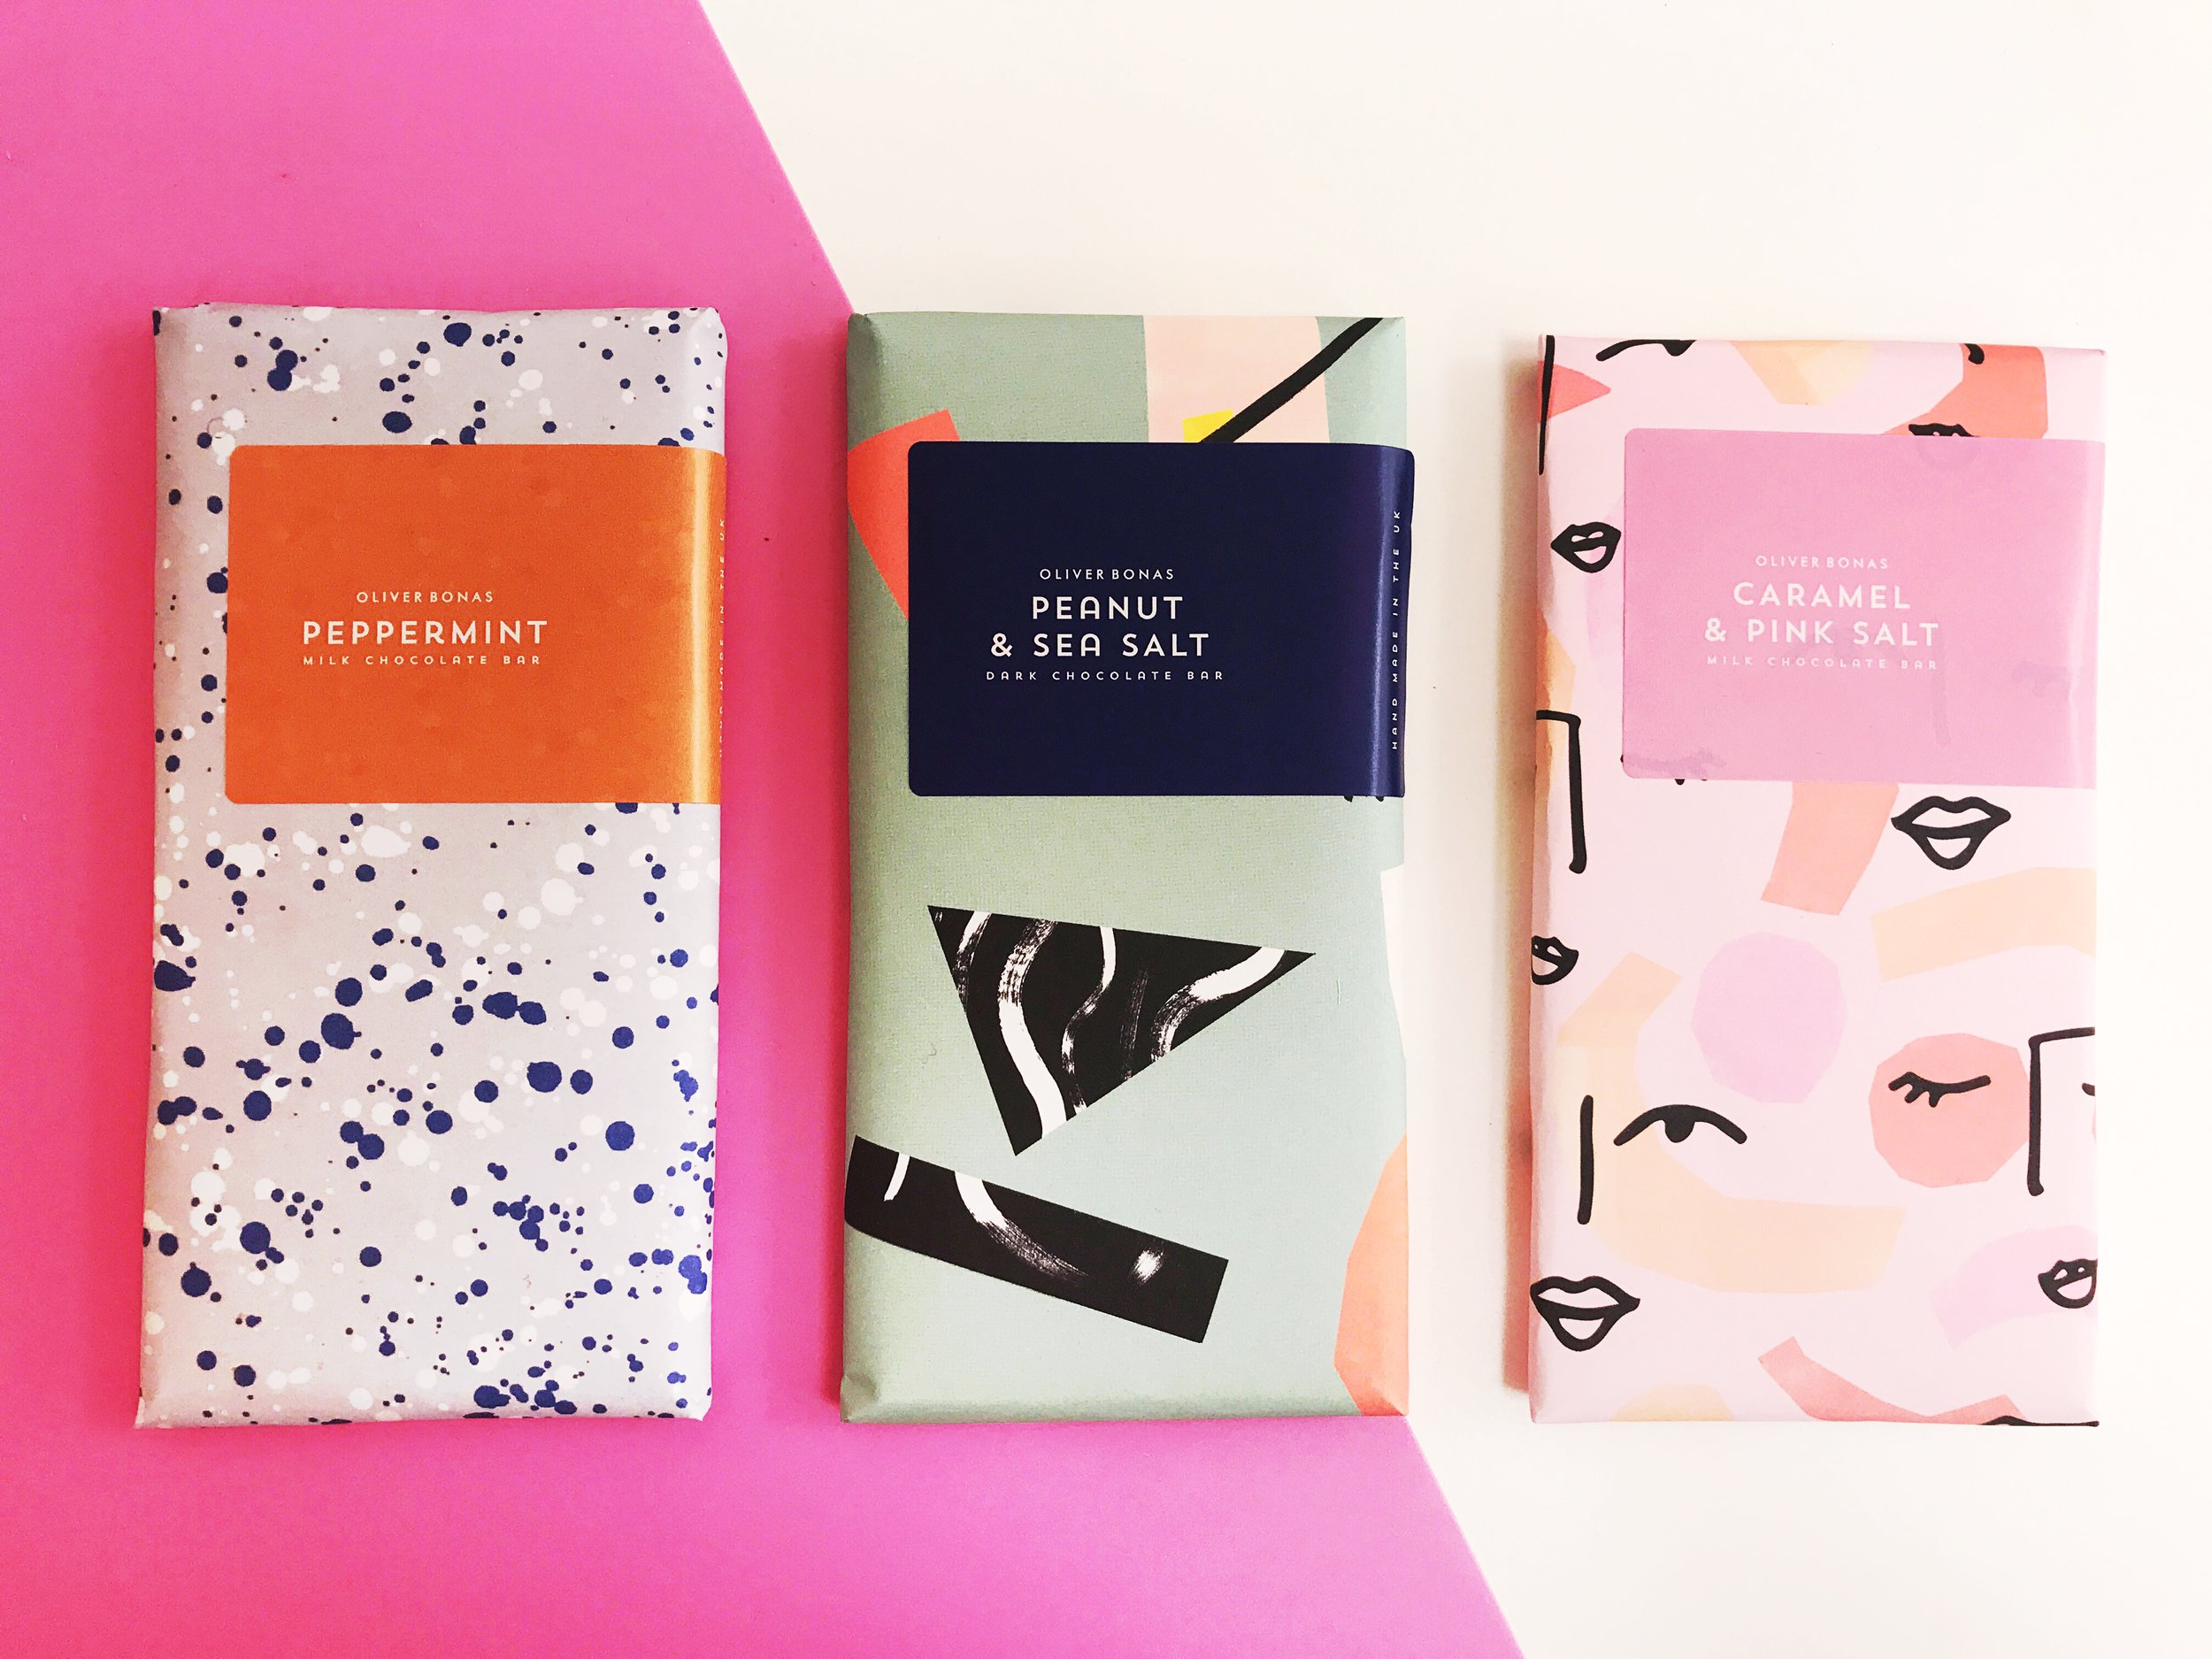 Creighton's x Oliver Bonas Exclusive Chocolate Bars